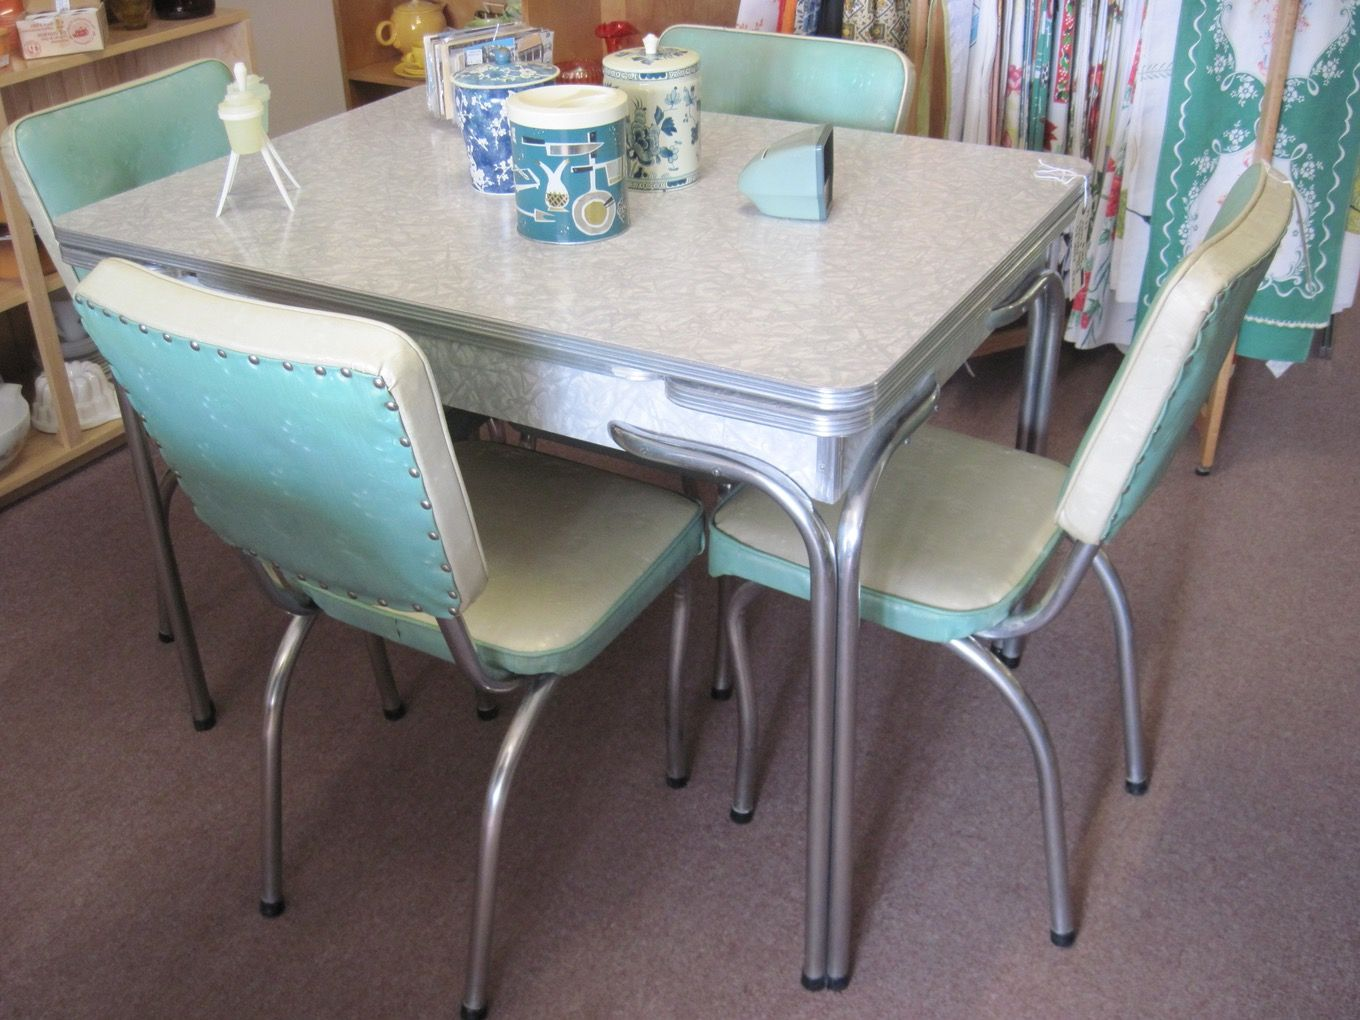 Retro Kitchen Table And Chairs For Sale  Stuhlede.com  Retro